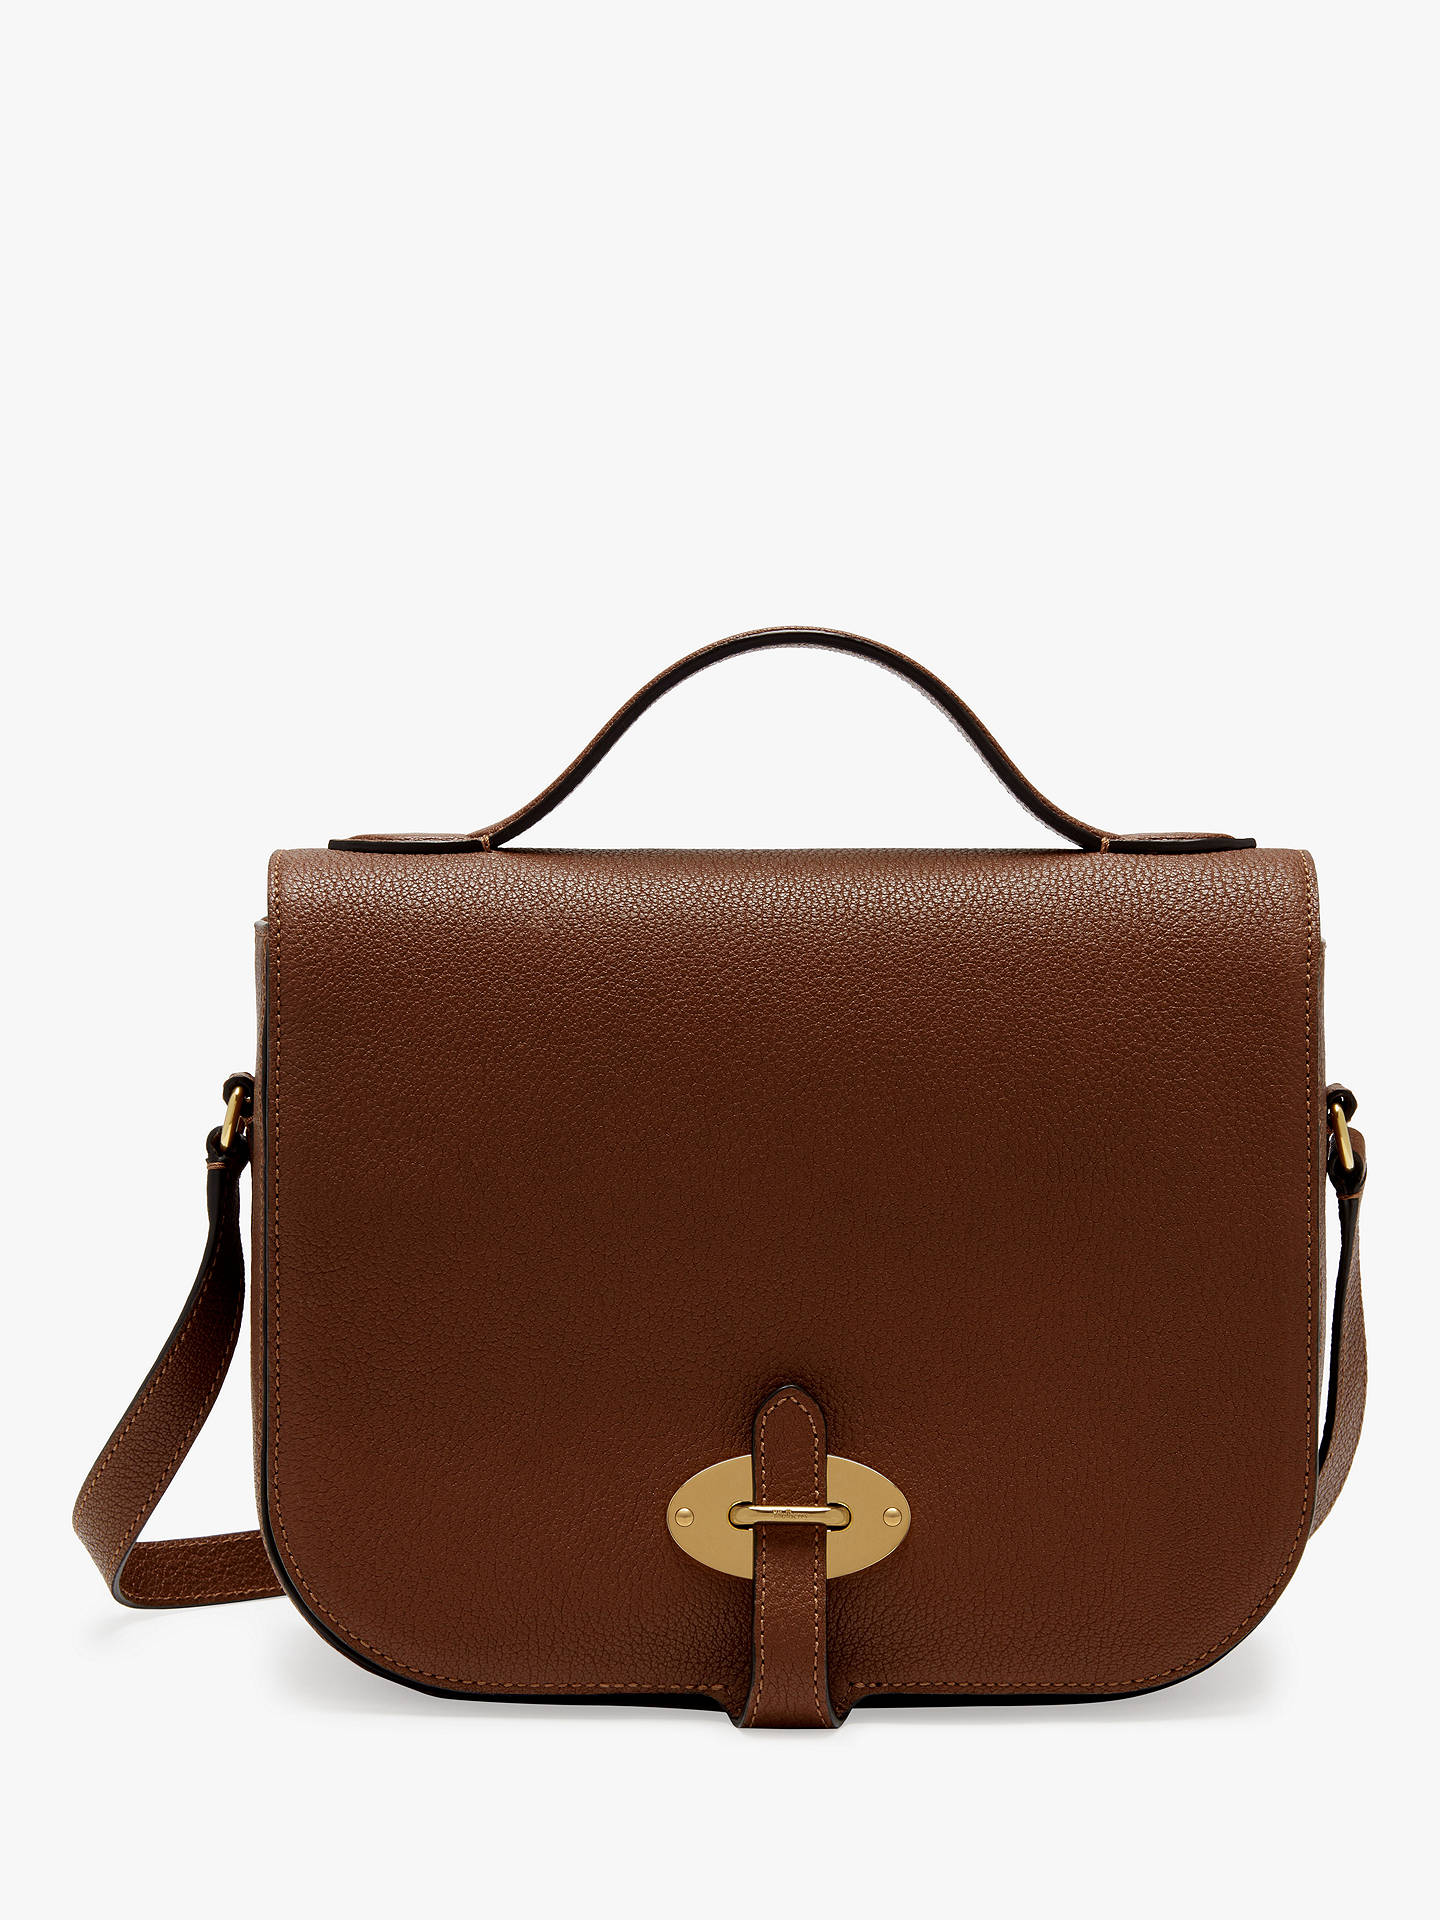 BuyMulberry Tenby Goat Textured Leather Satchel Bag, Tan Online at  johnlewis.com ... f9d359ff7f